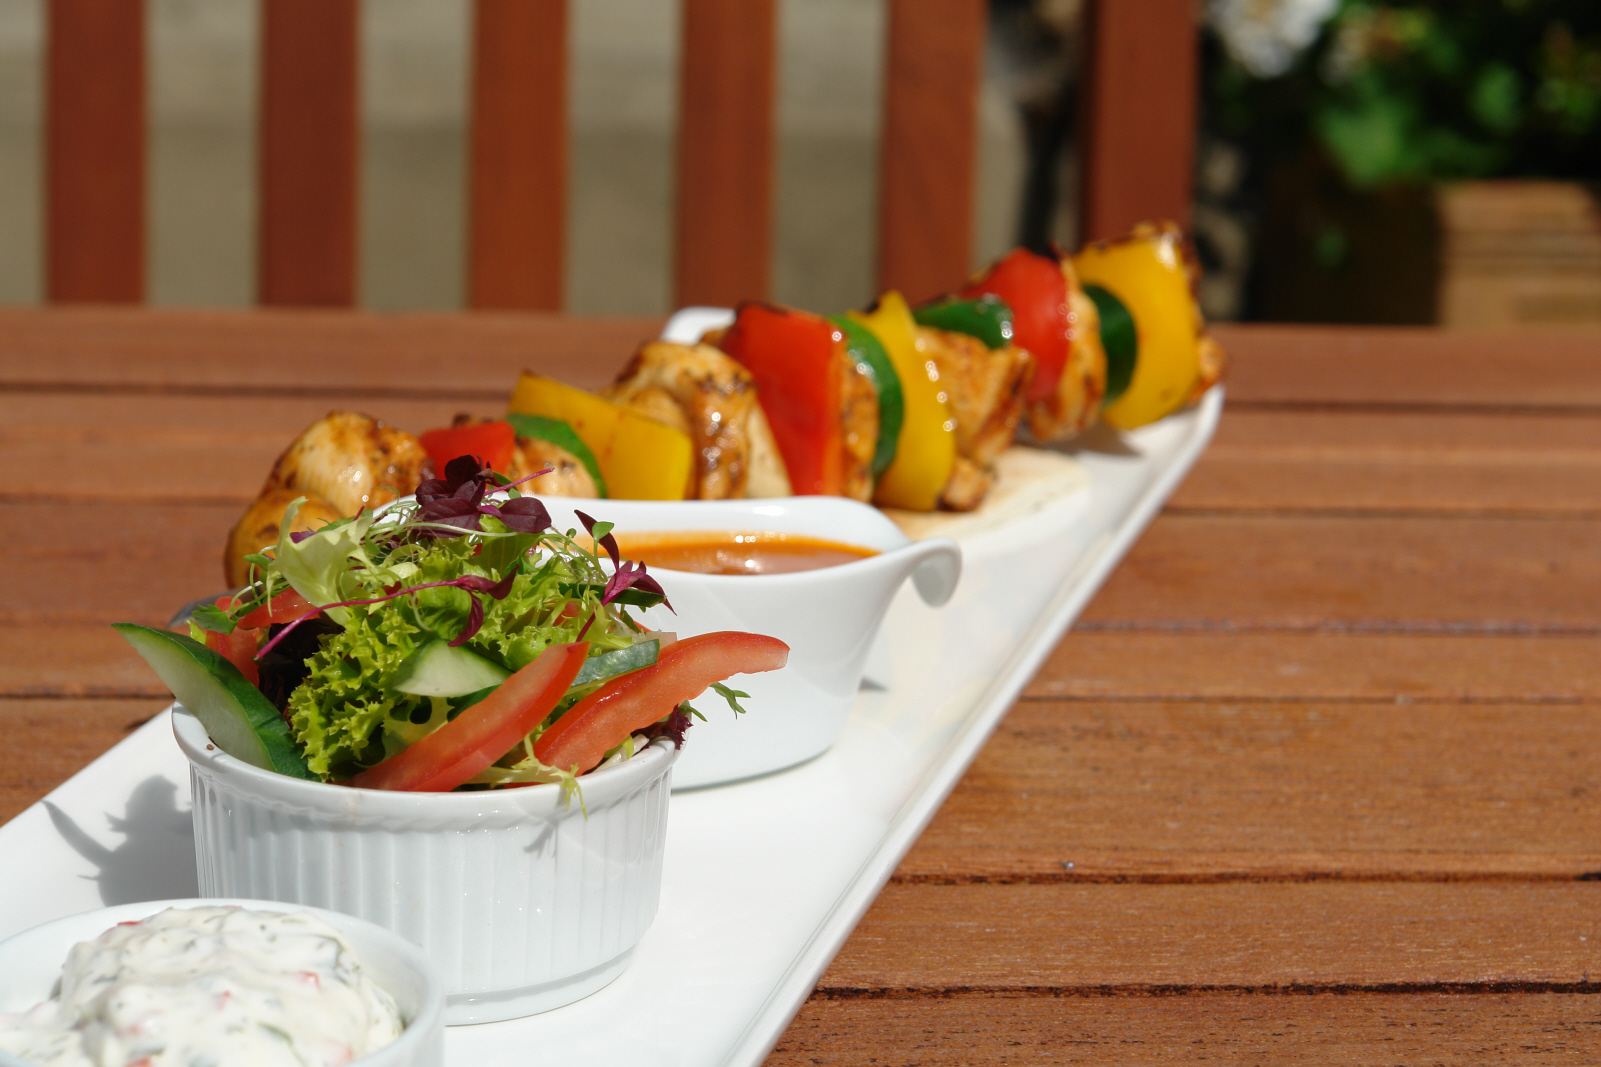 Executive Direct will manage and exceed your catering and hospitality requirements